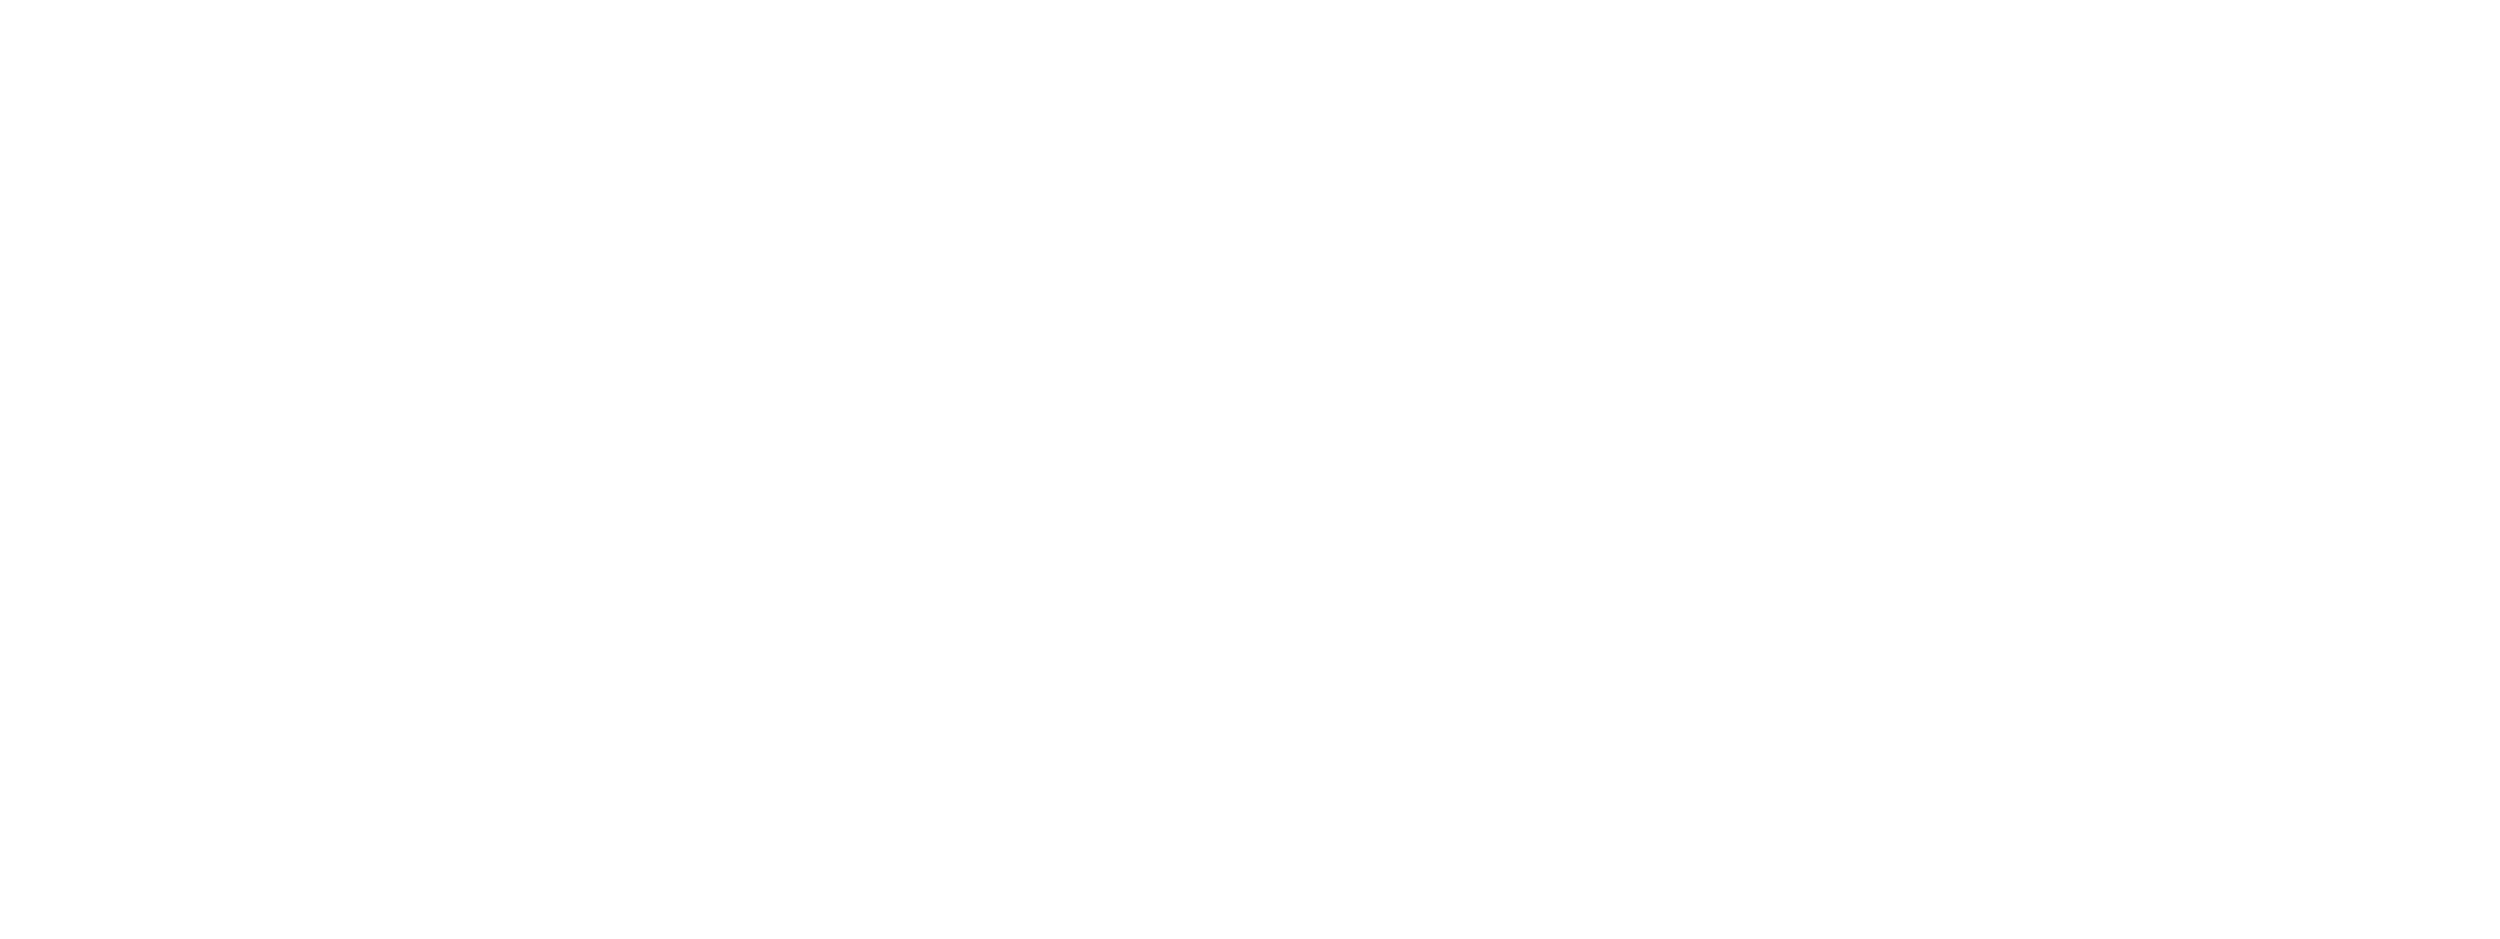 TribbleShoot Photography